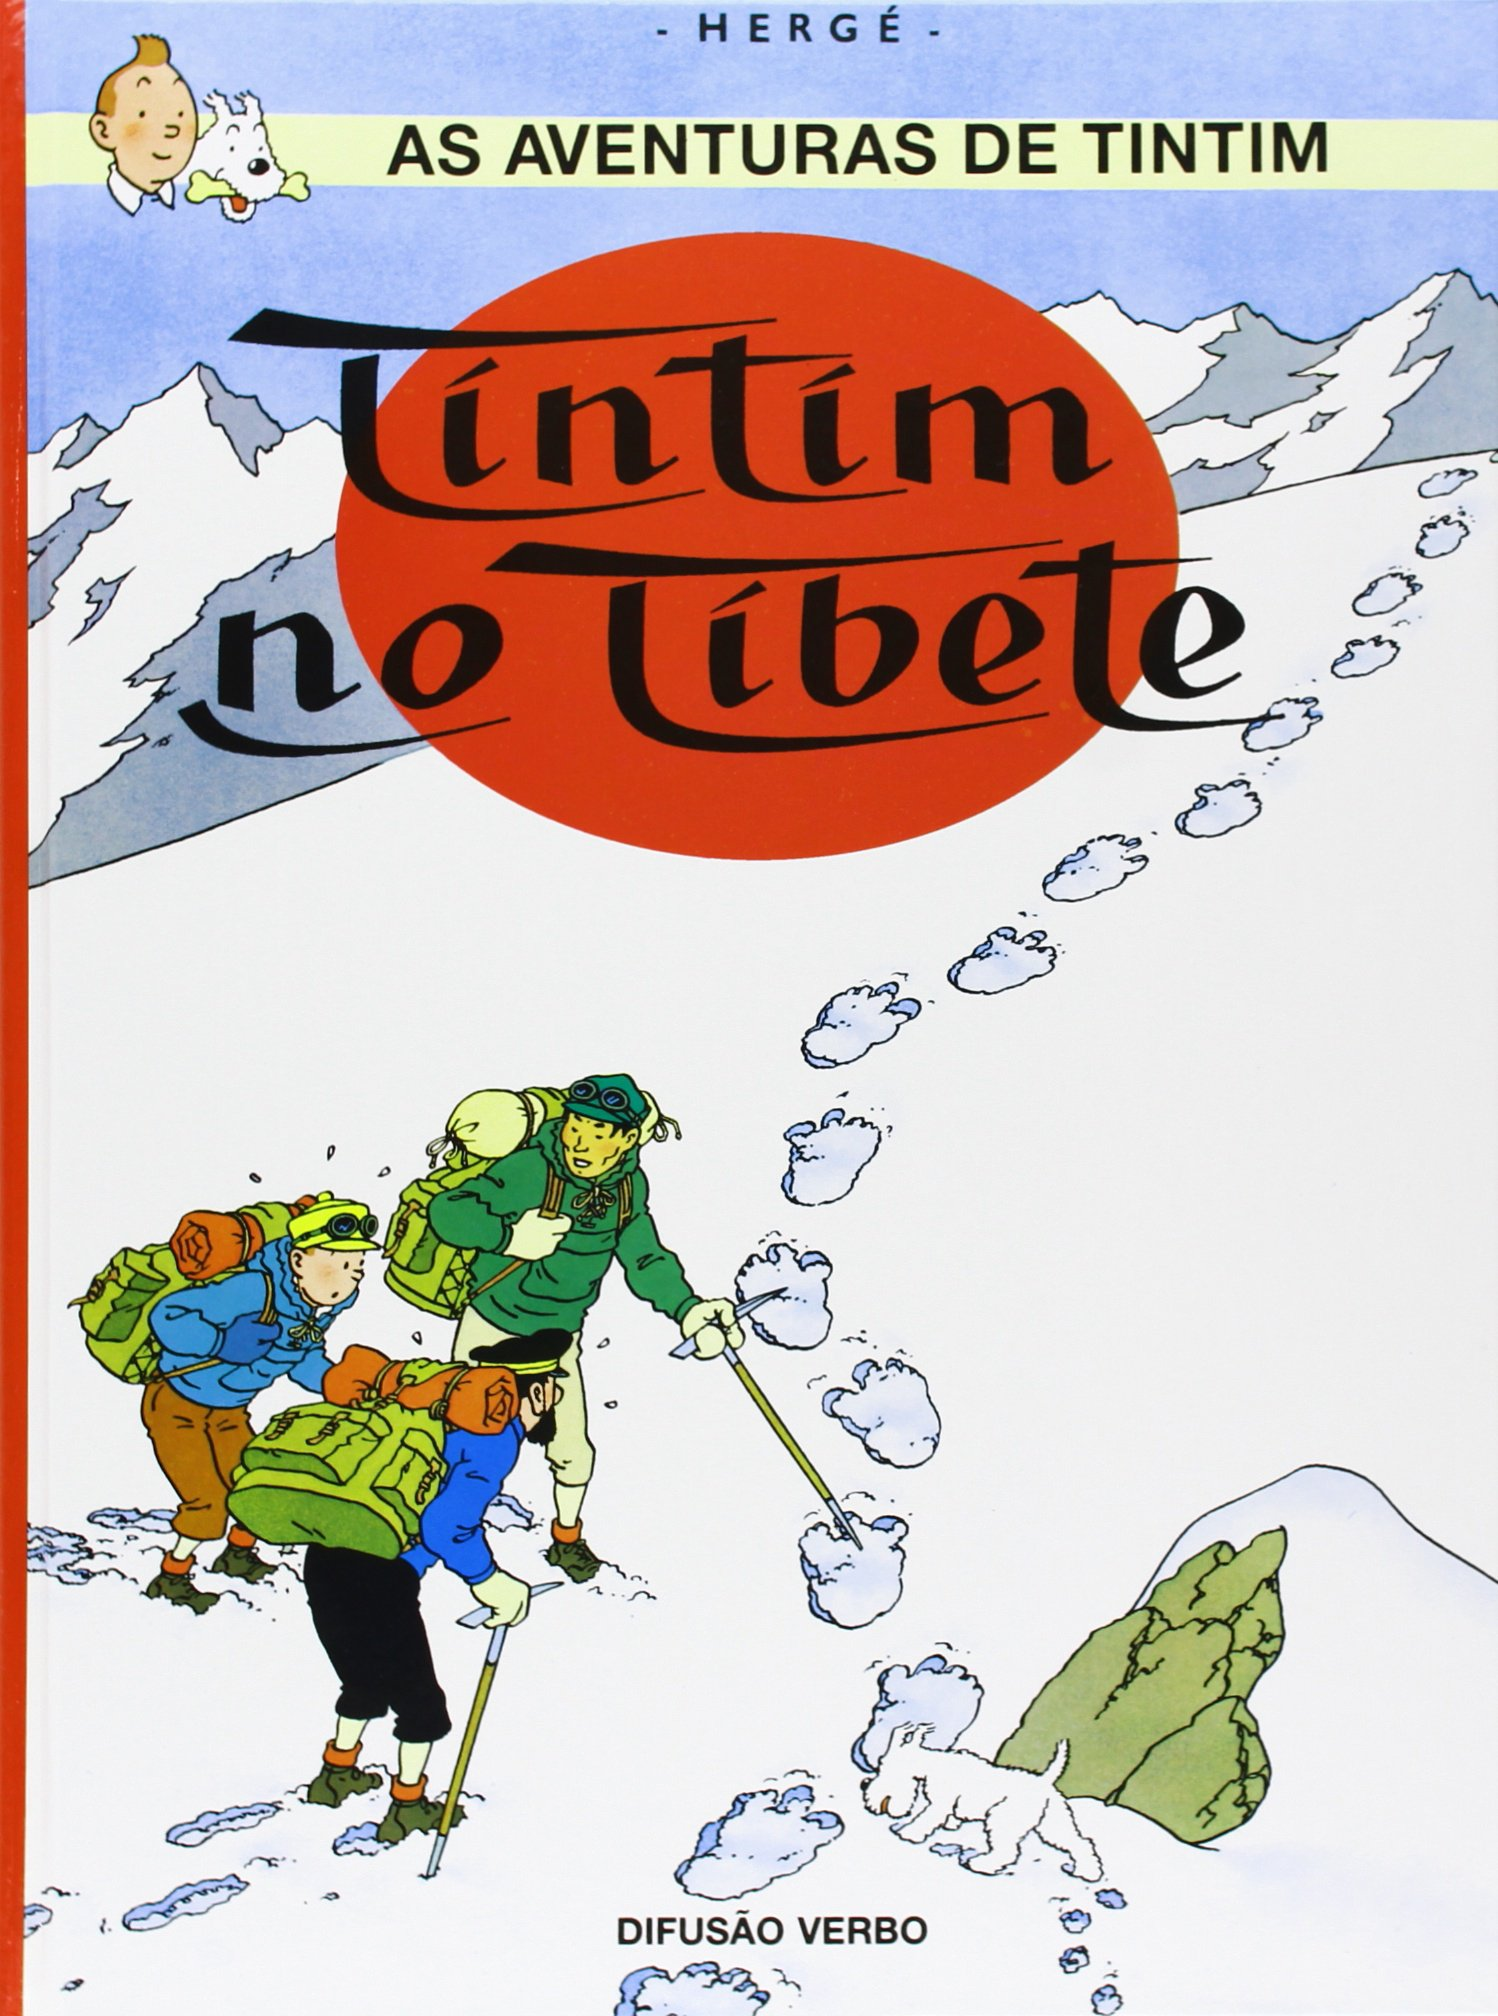 KUIFJE IN TIBET - Portugees (PORTUGESE KUIFJES)